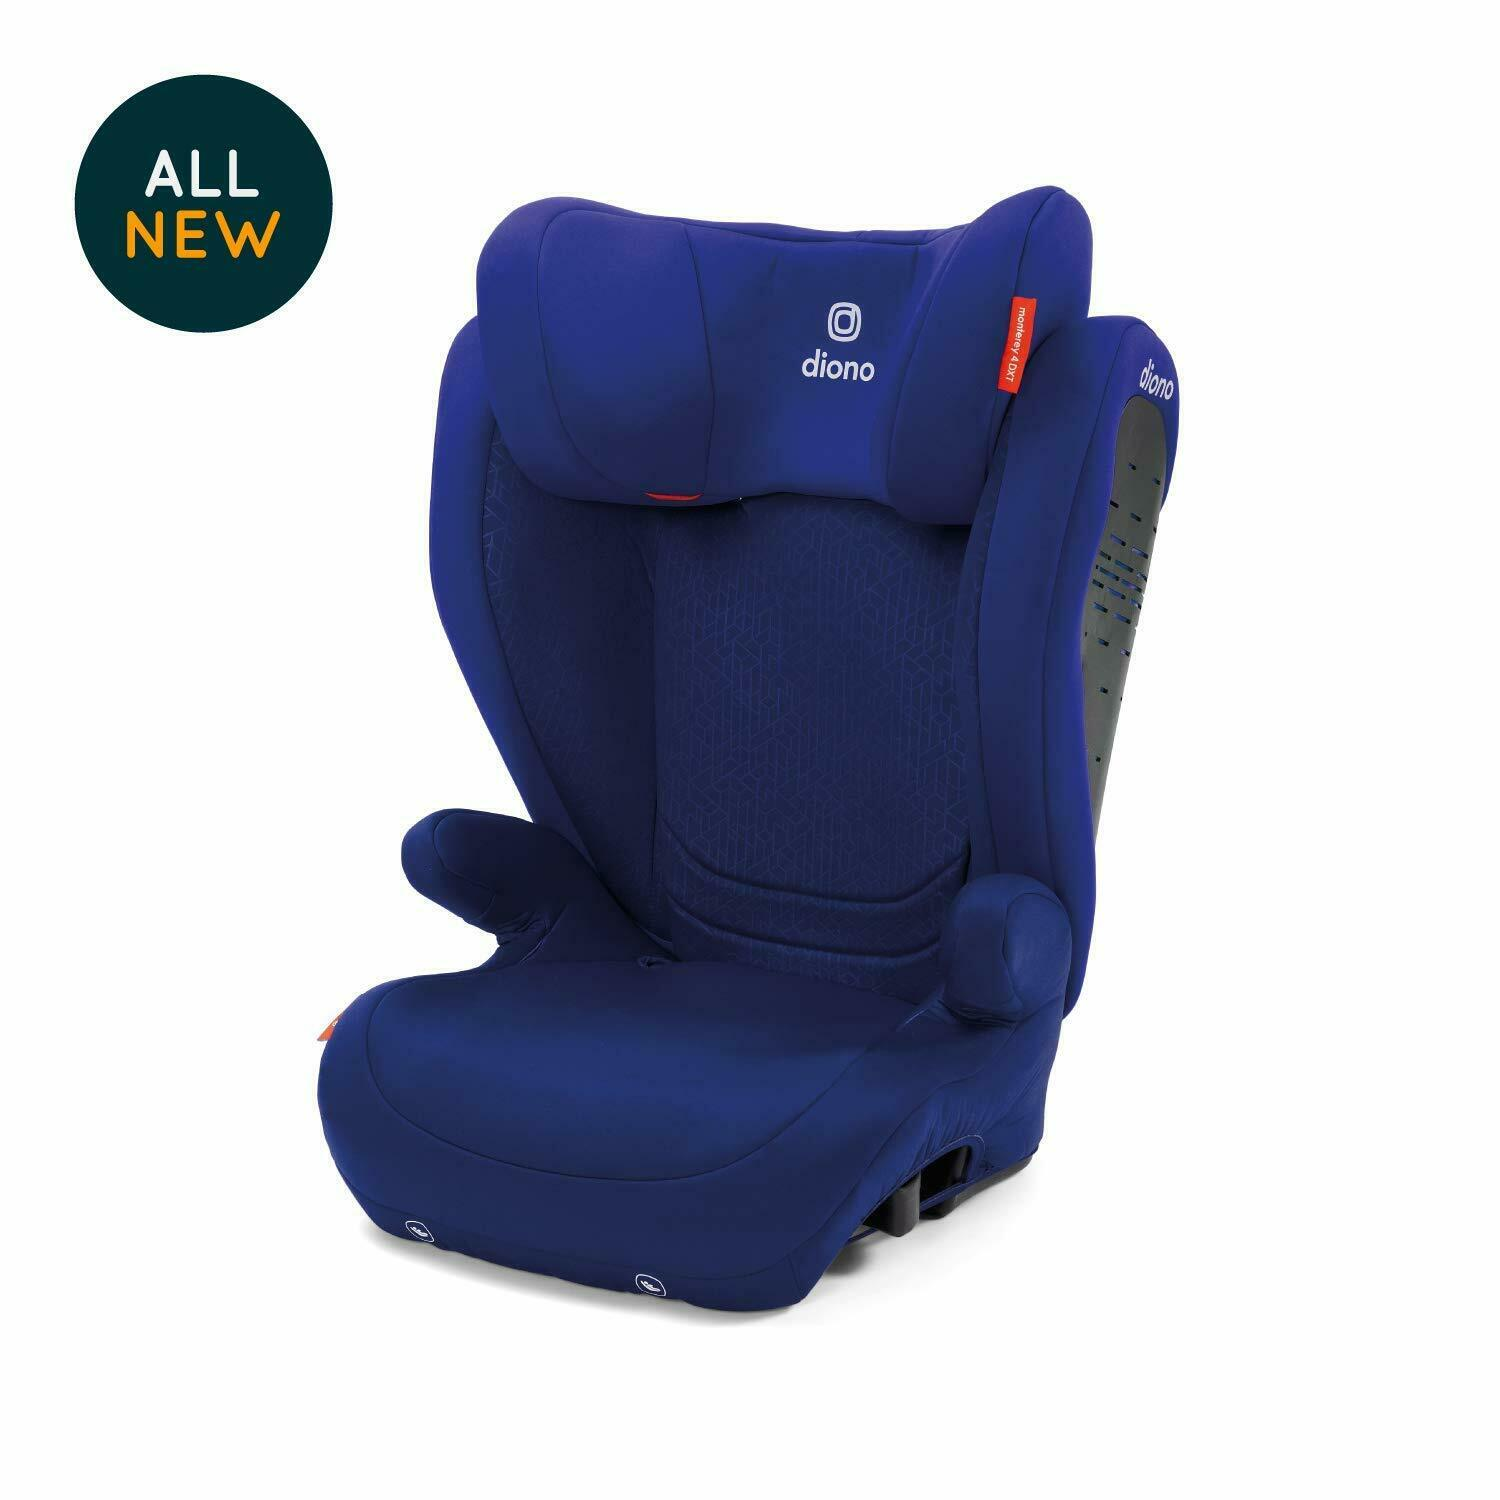 Diono Monterey 4DXT LATCH Booster Car Seat in Blue